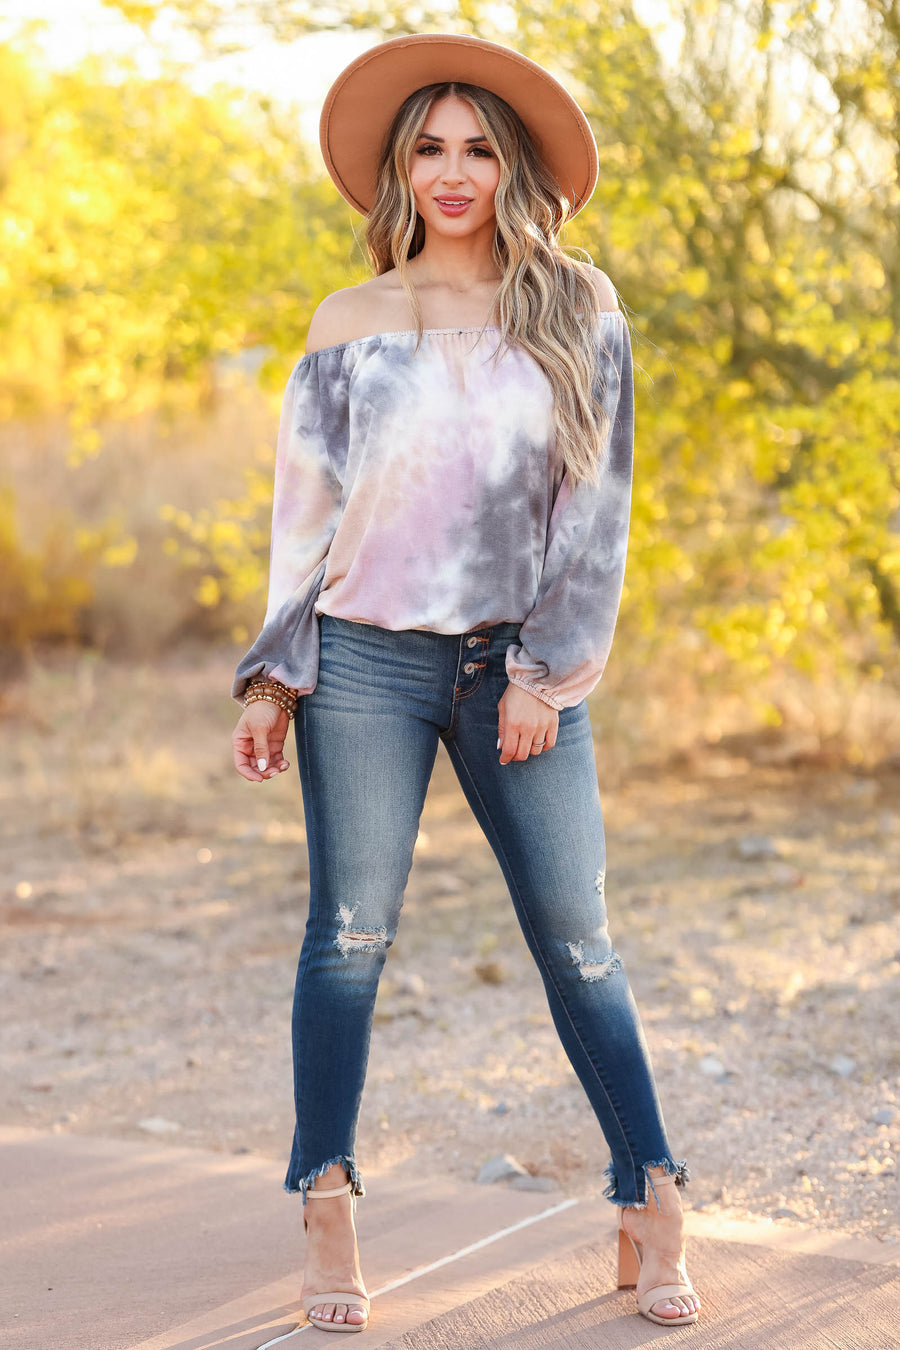 CBRAND Brush Your Shoulders Off Top - Midnight Tie Dye closet candy women's trendy tie dye off the shoulder long sleeve top front